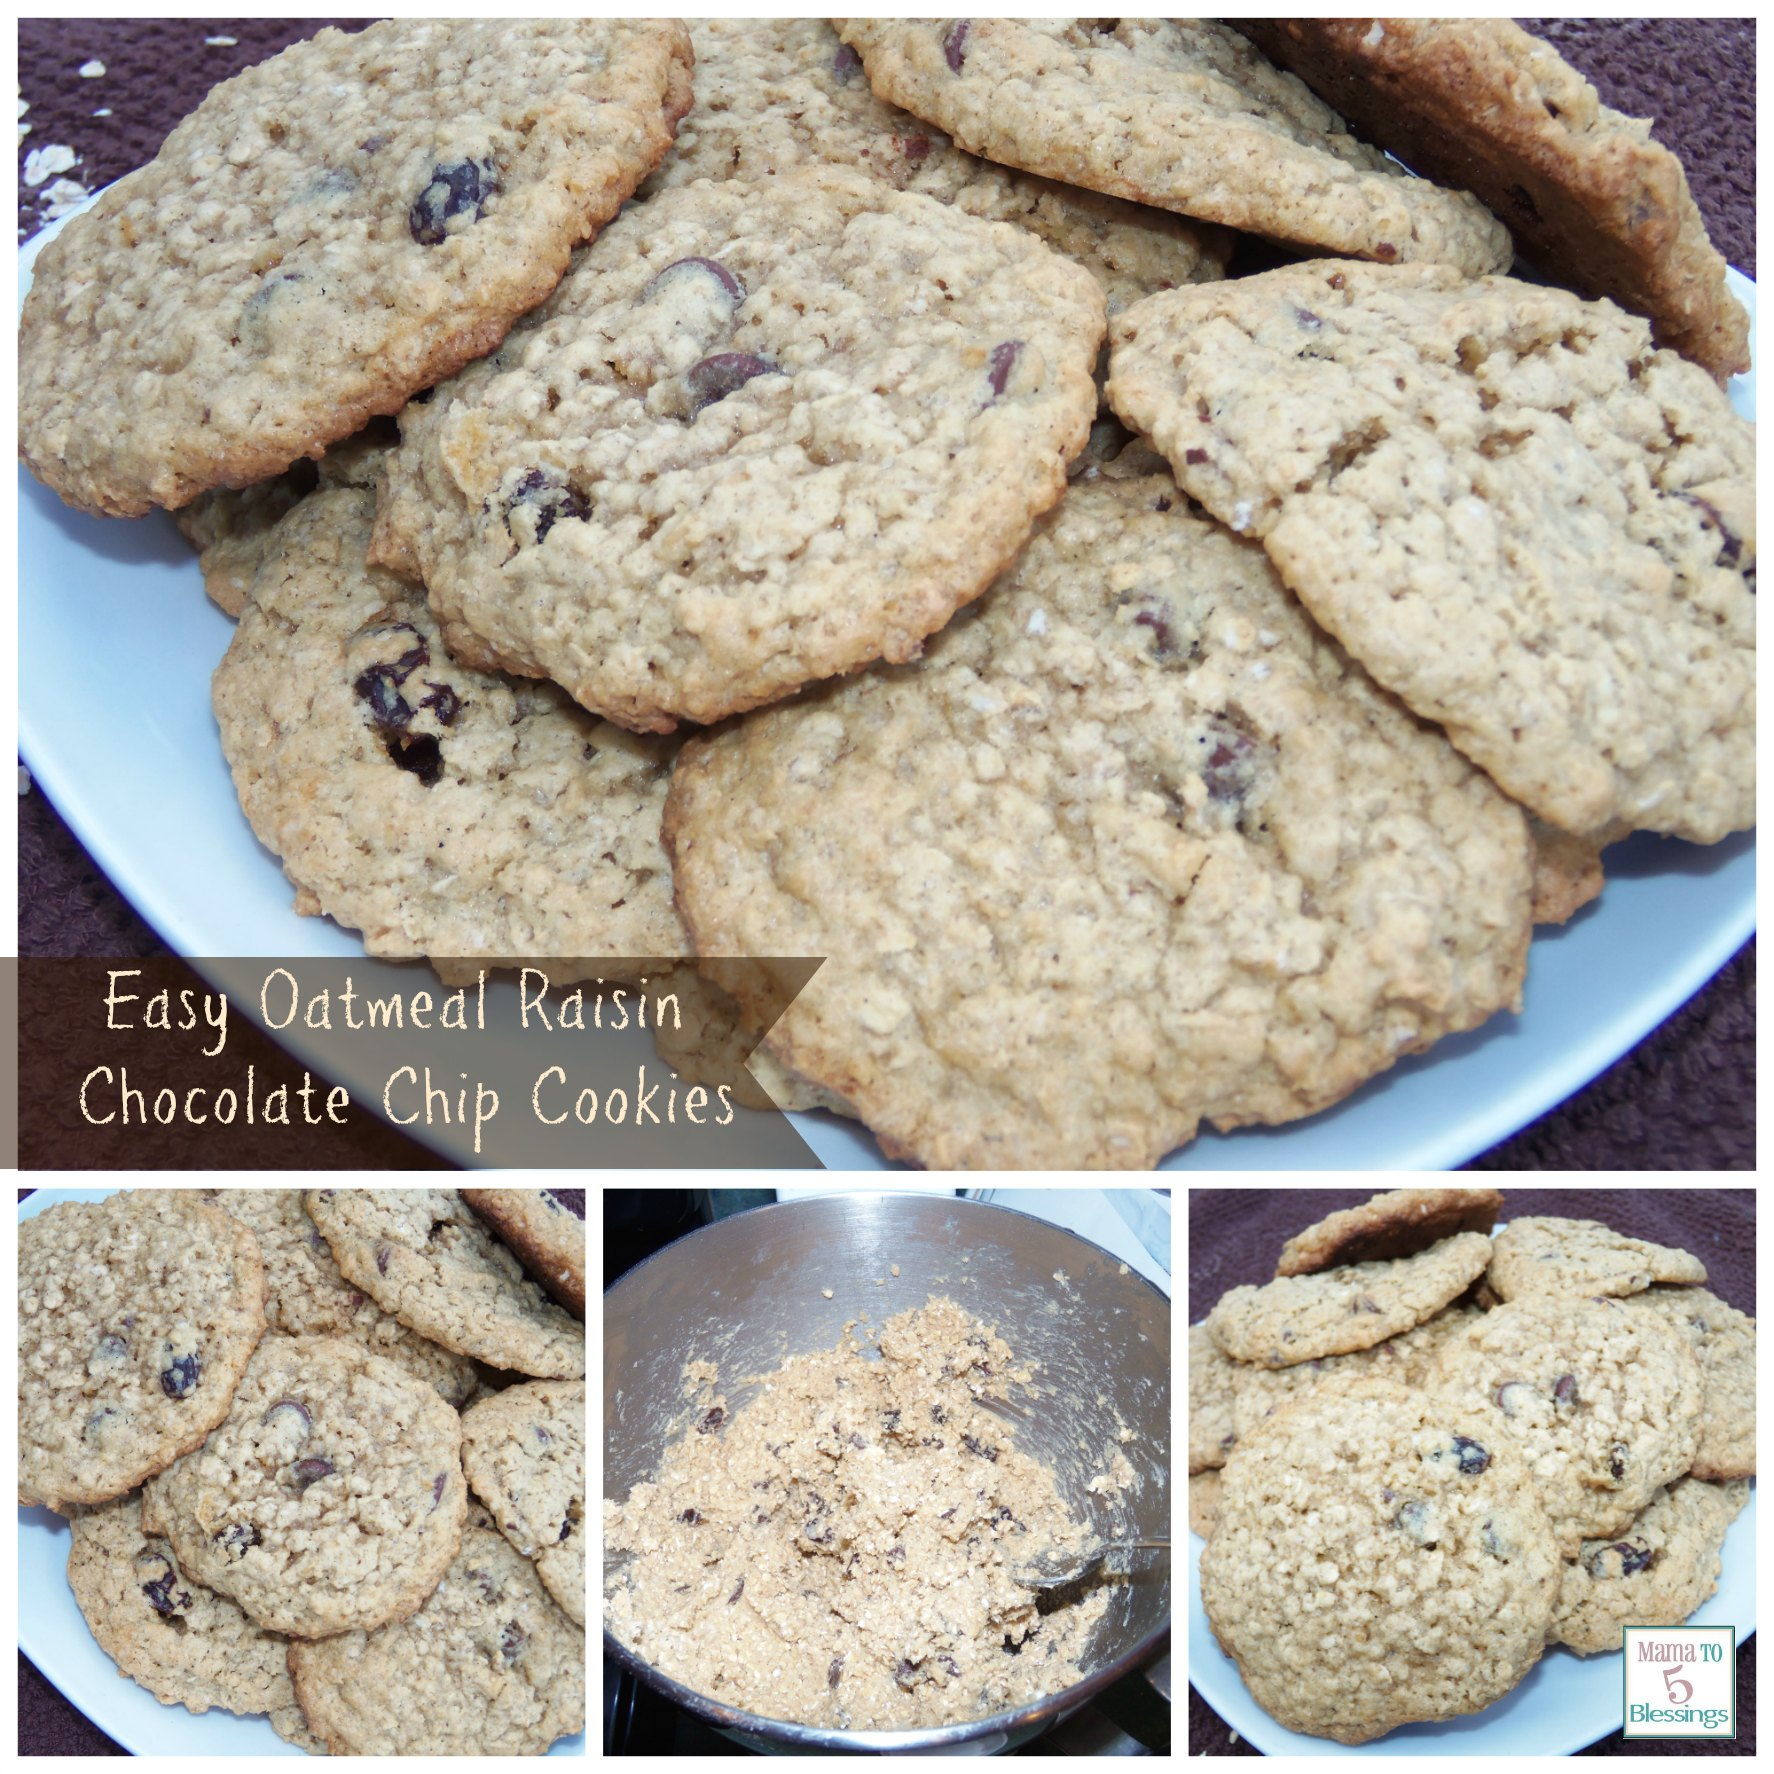 Inoffensive Oatmeal-Raisin Chocolate Chip Cookie Recipe ...